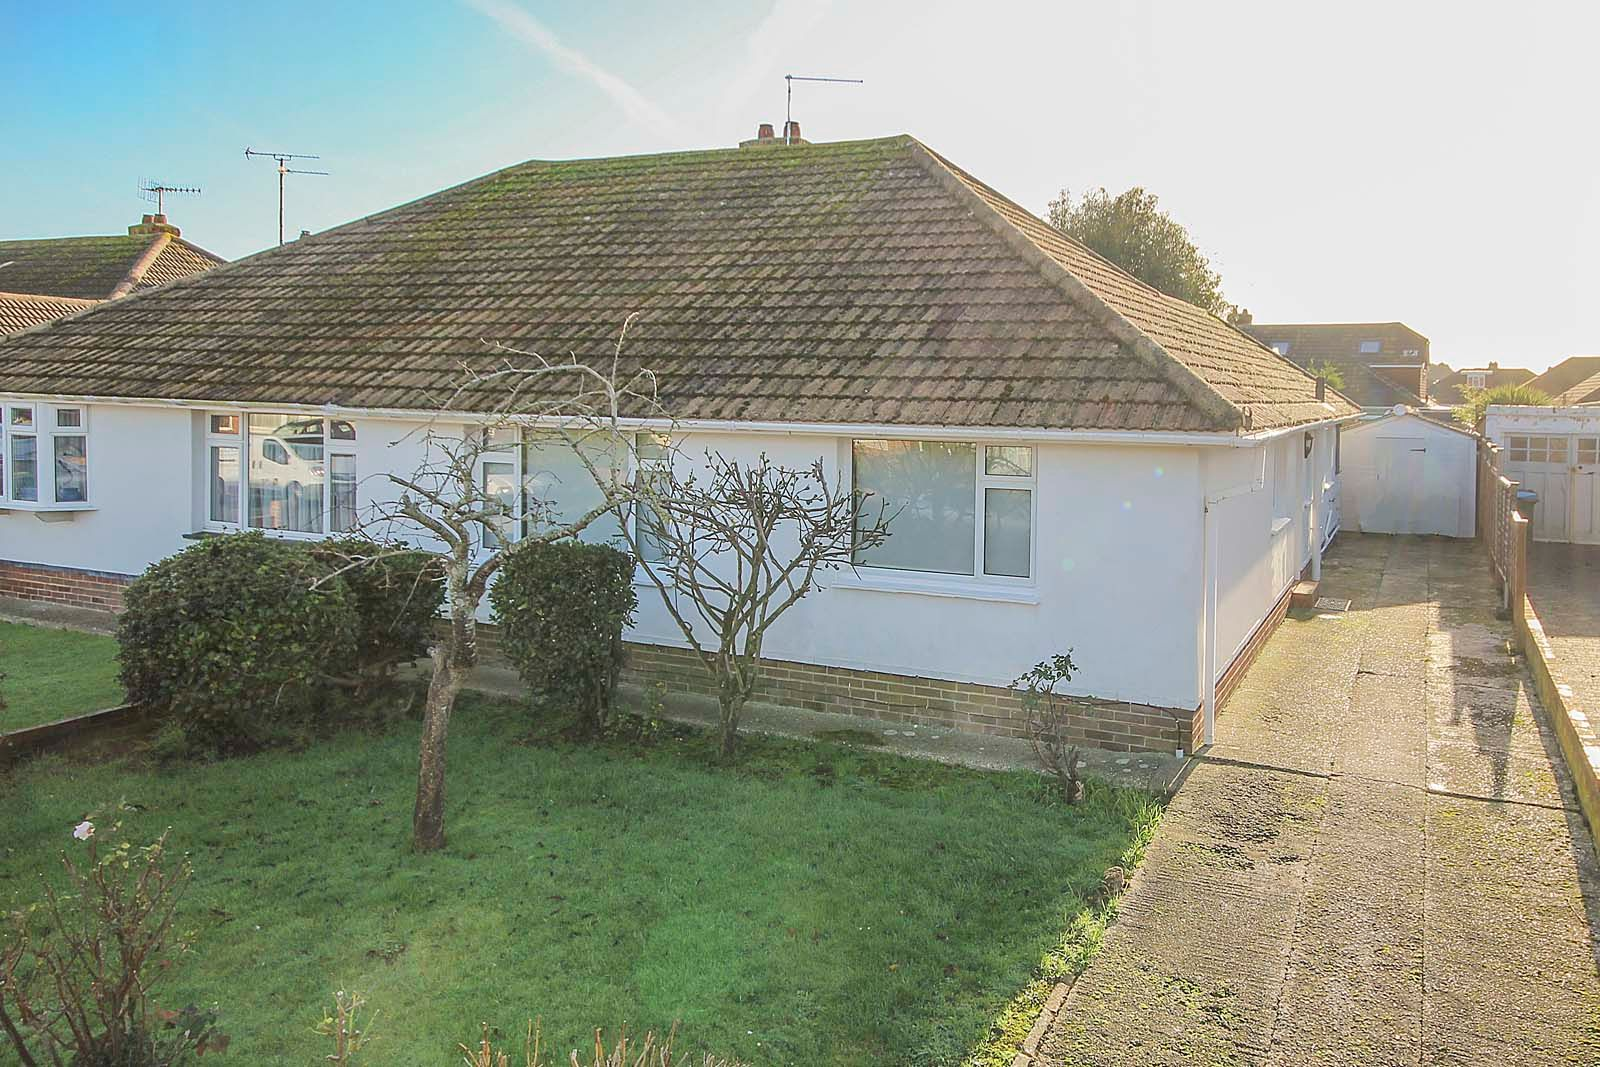 3 bed bungalow for sale in Hillview Crescent COMP MAY 2019 1